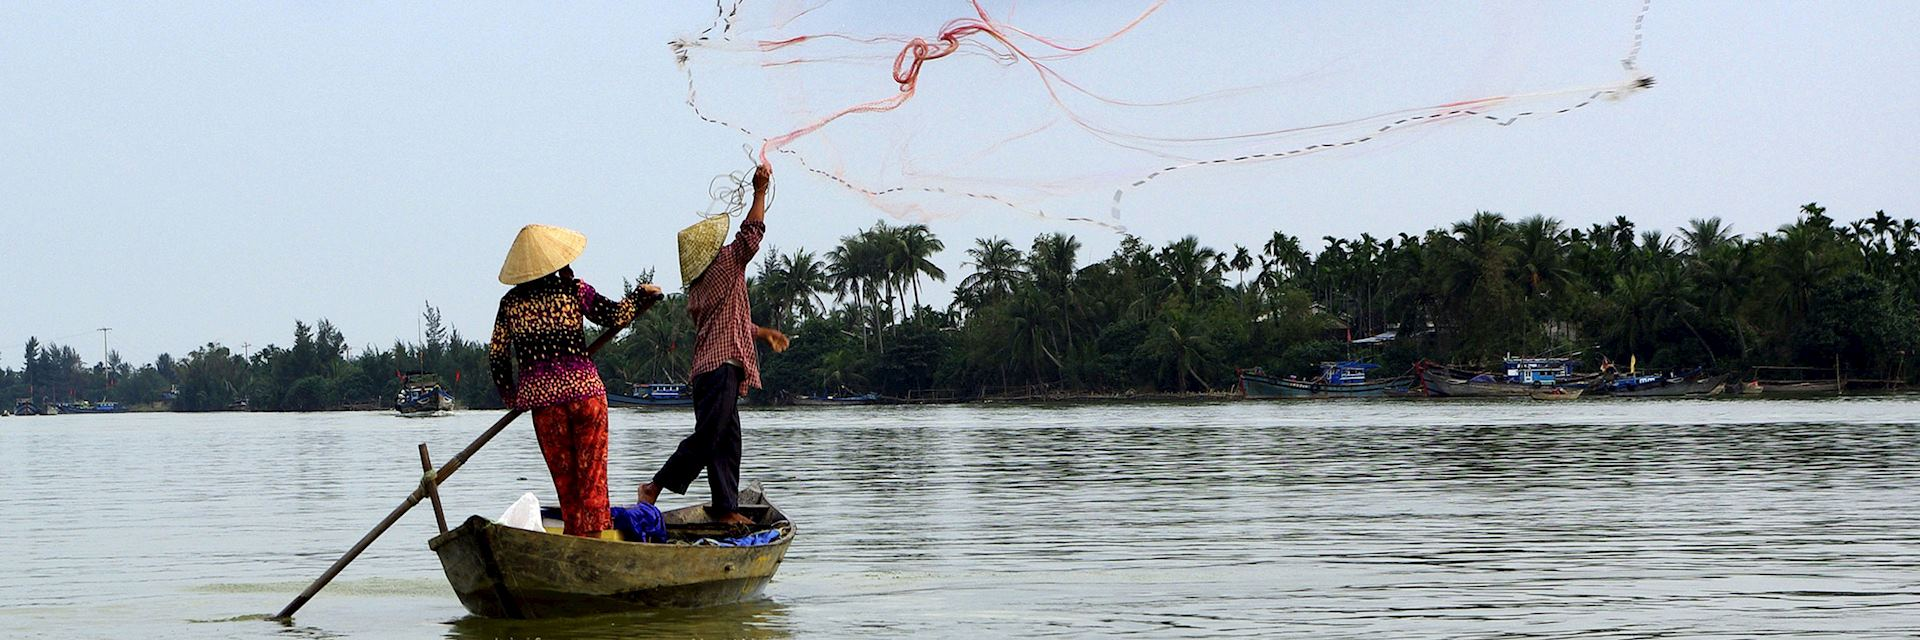 Fishing on the Mekong River, Cambodia